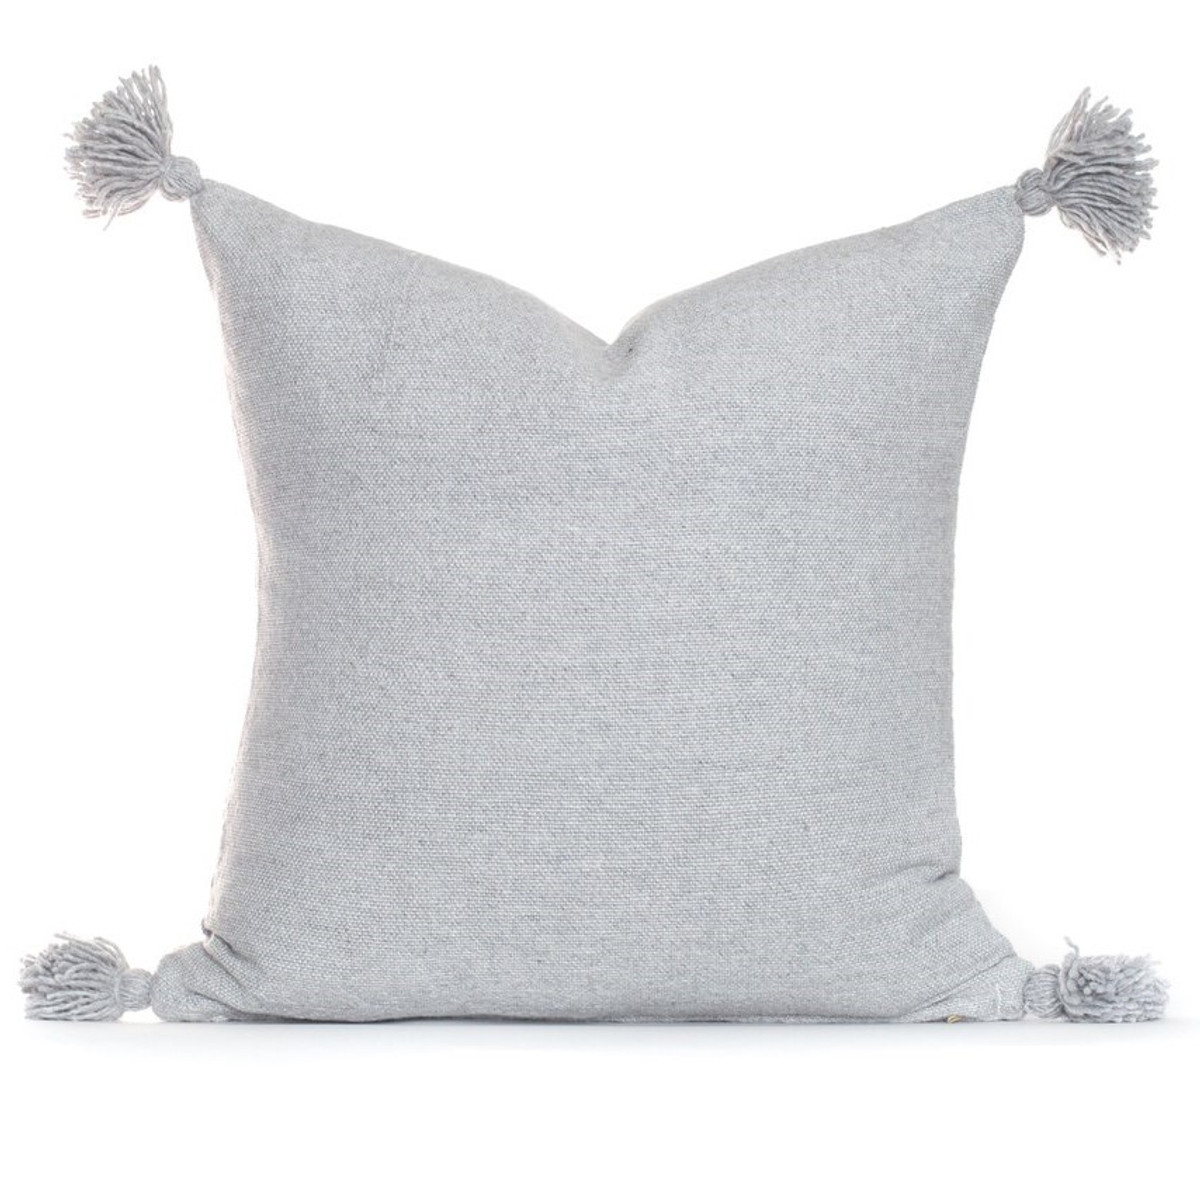 Frenchie Pillow - Gris Claire - Front